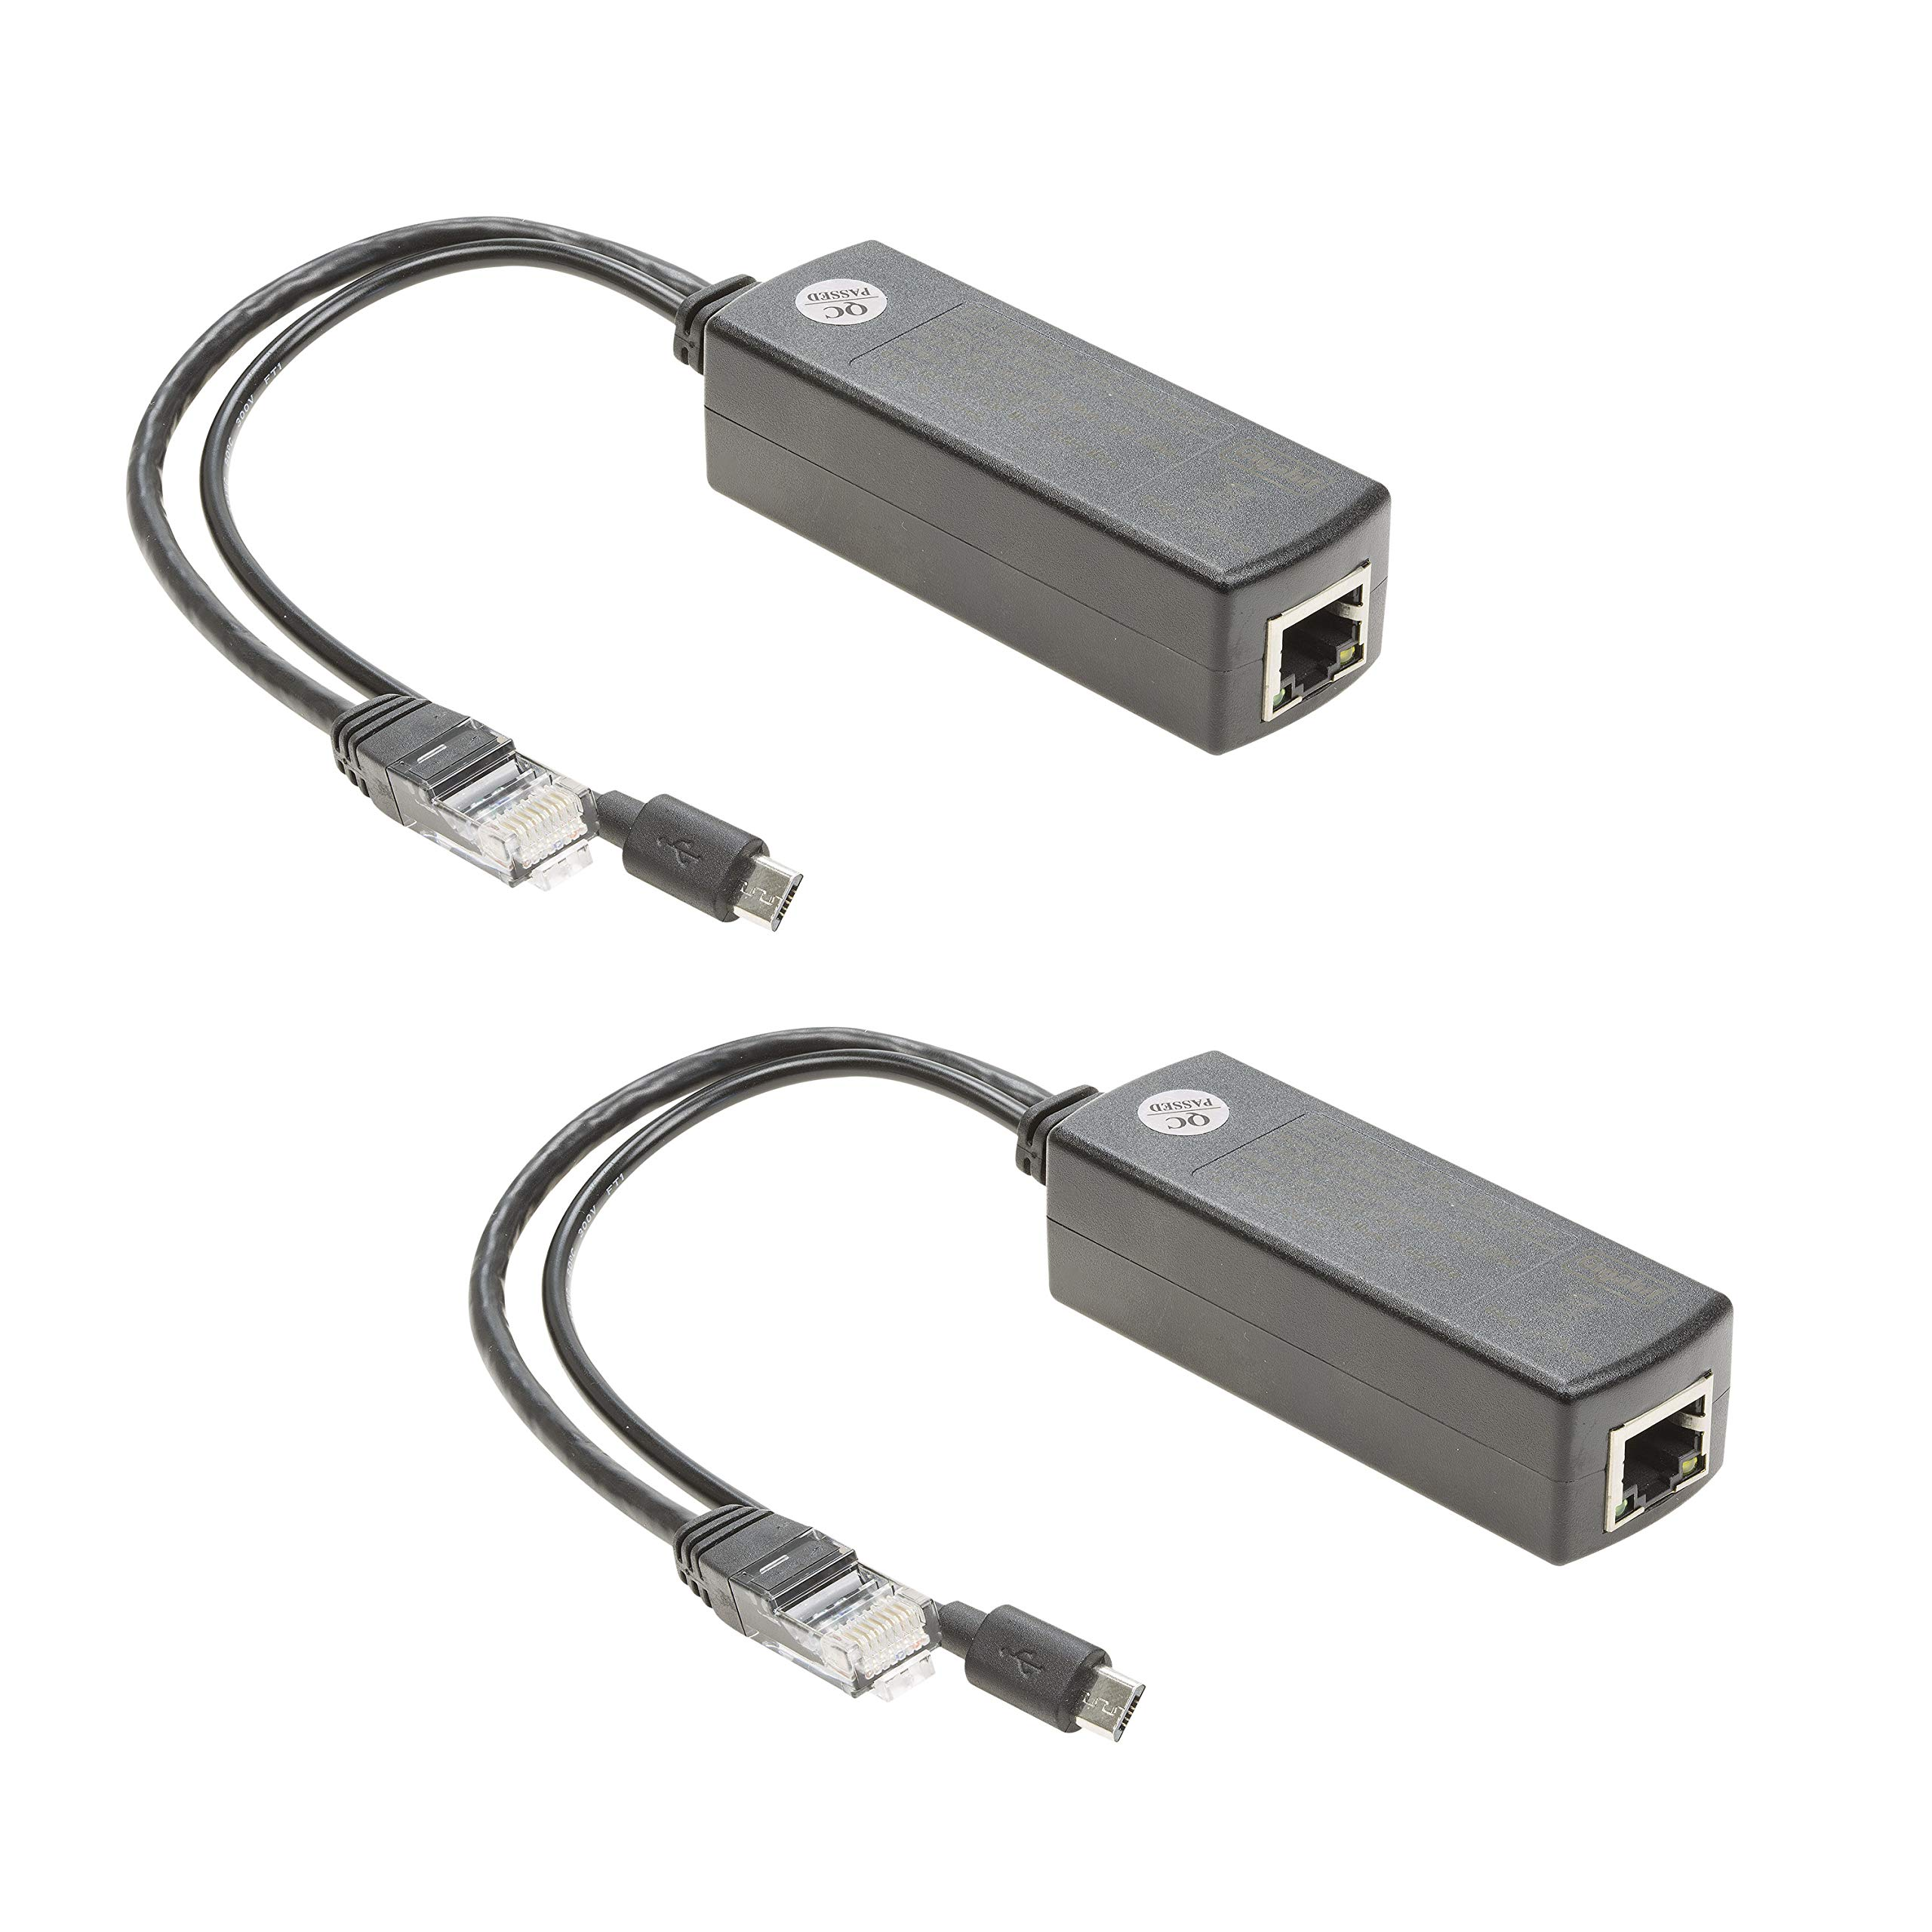 UCTRONICS for Raspberry Pi PoE Splitter 5V [2-Pack] - Active PoE to Micro USB Adapter, IEEE 802.3af Compliant, for Tablets, Dropcam and Raspberry Pi 2/3, and More by UCTRONICS